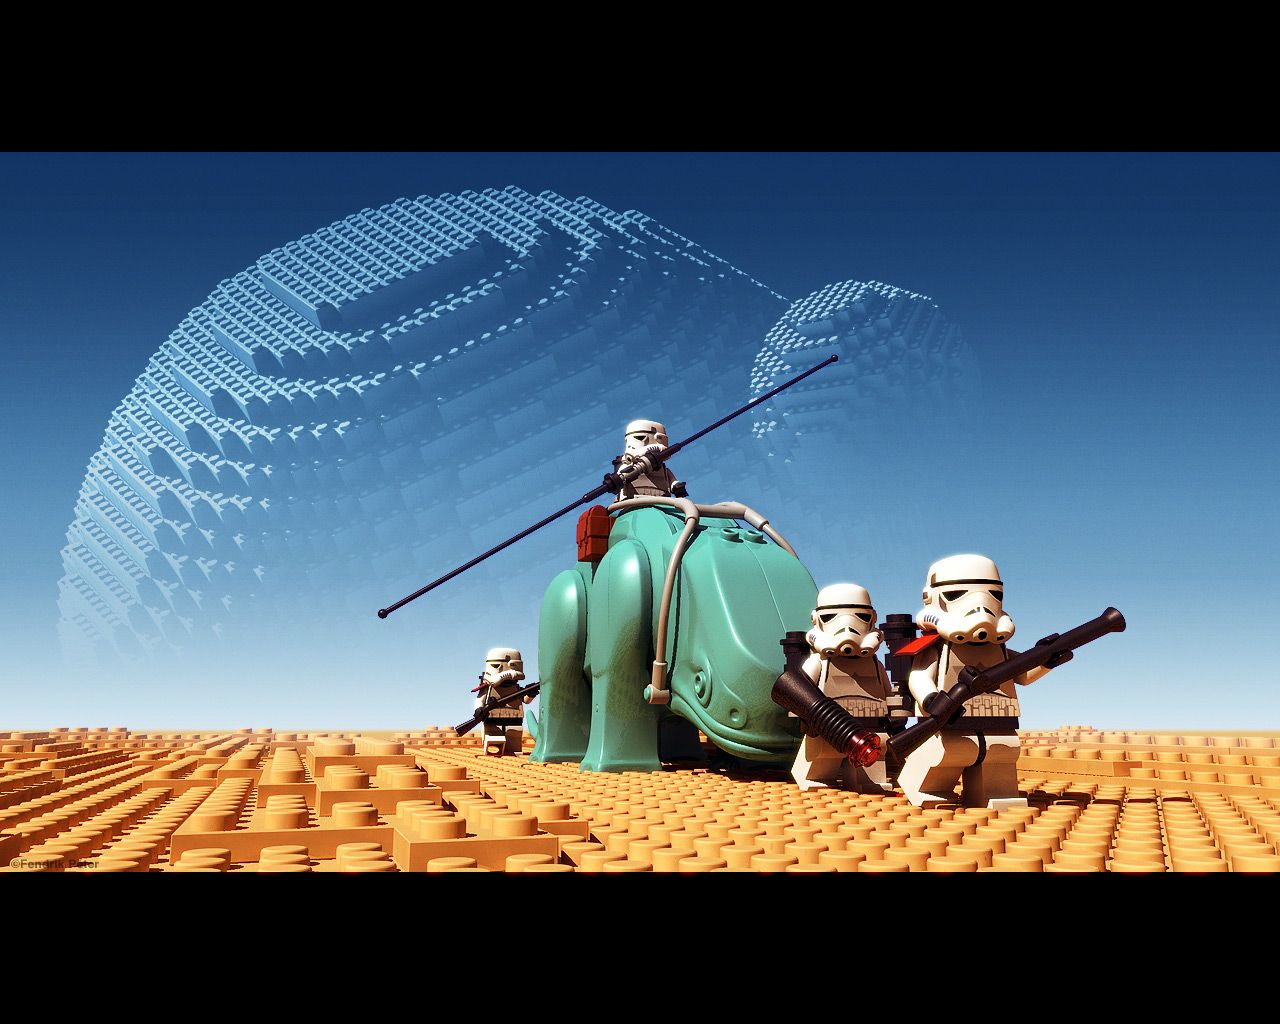 Lego Star Wars Awesome Hd Wallpaper Star Wars Awesome Star Wars Wallpaper Lego Wallpaper